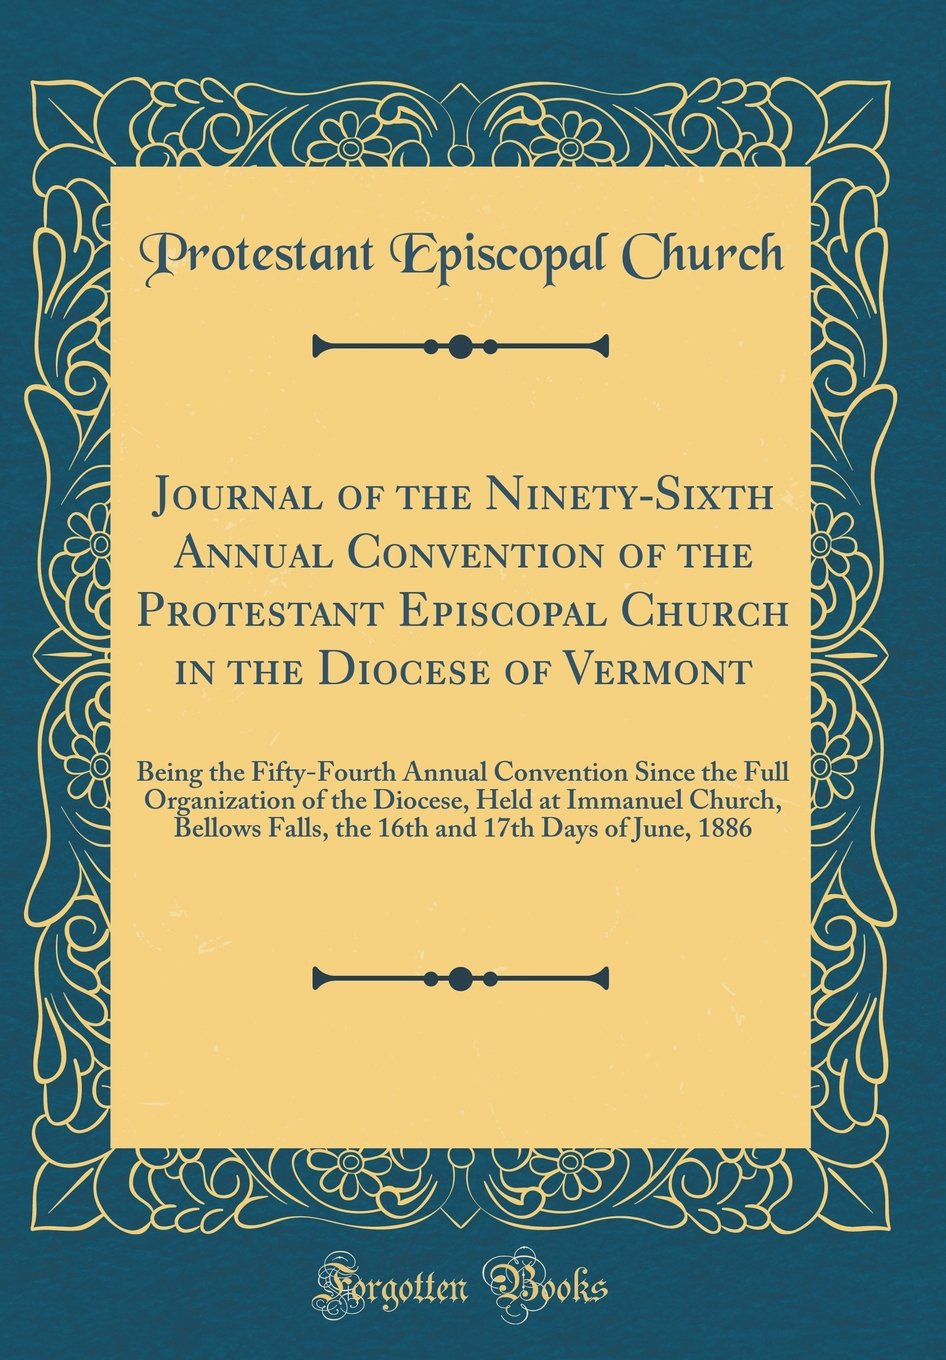 Journal of the Ninety-Sixth Annual Convention of the Protestant Episcopal Church in the Diocese of Vermont: Being the Fifty-Fourth Annual Convention ... Church, Bellows Falls, the 16th and 17th Days pdf